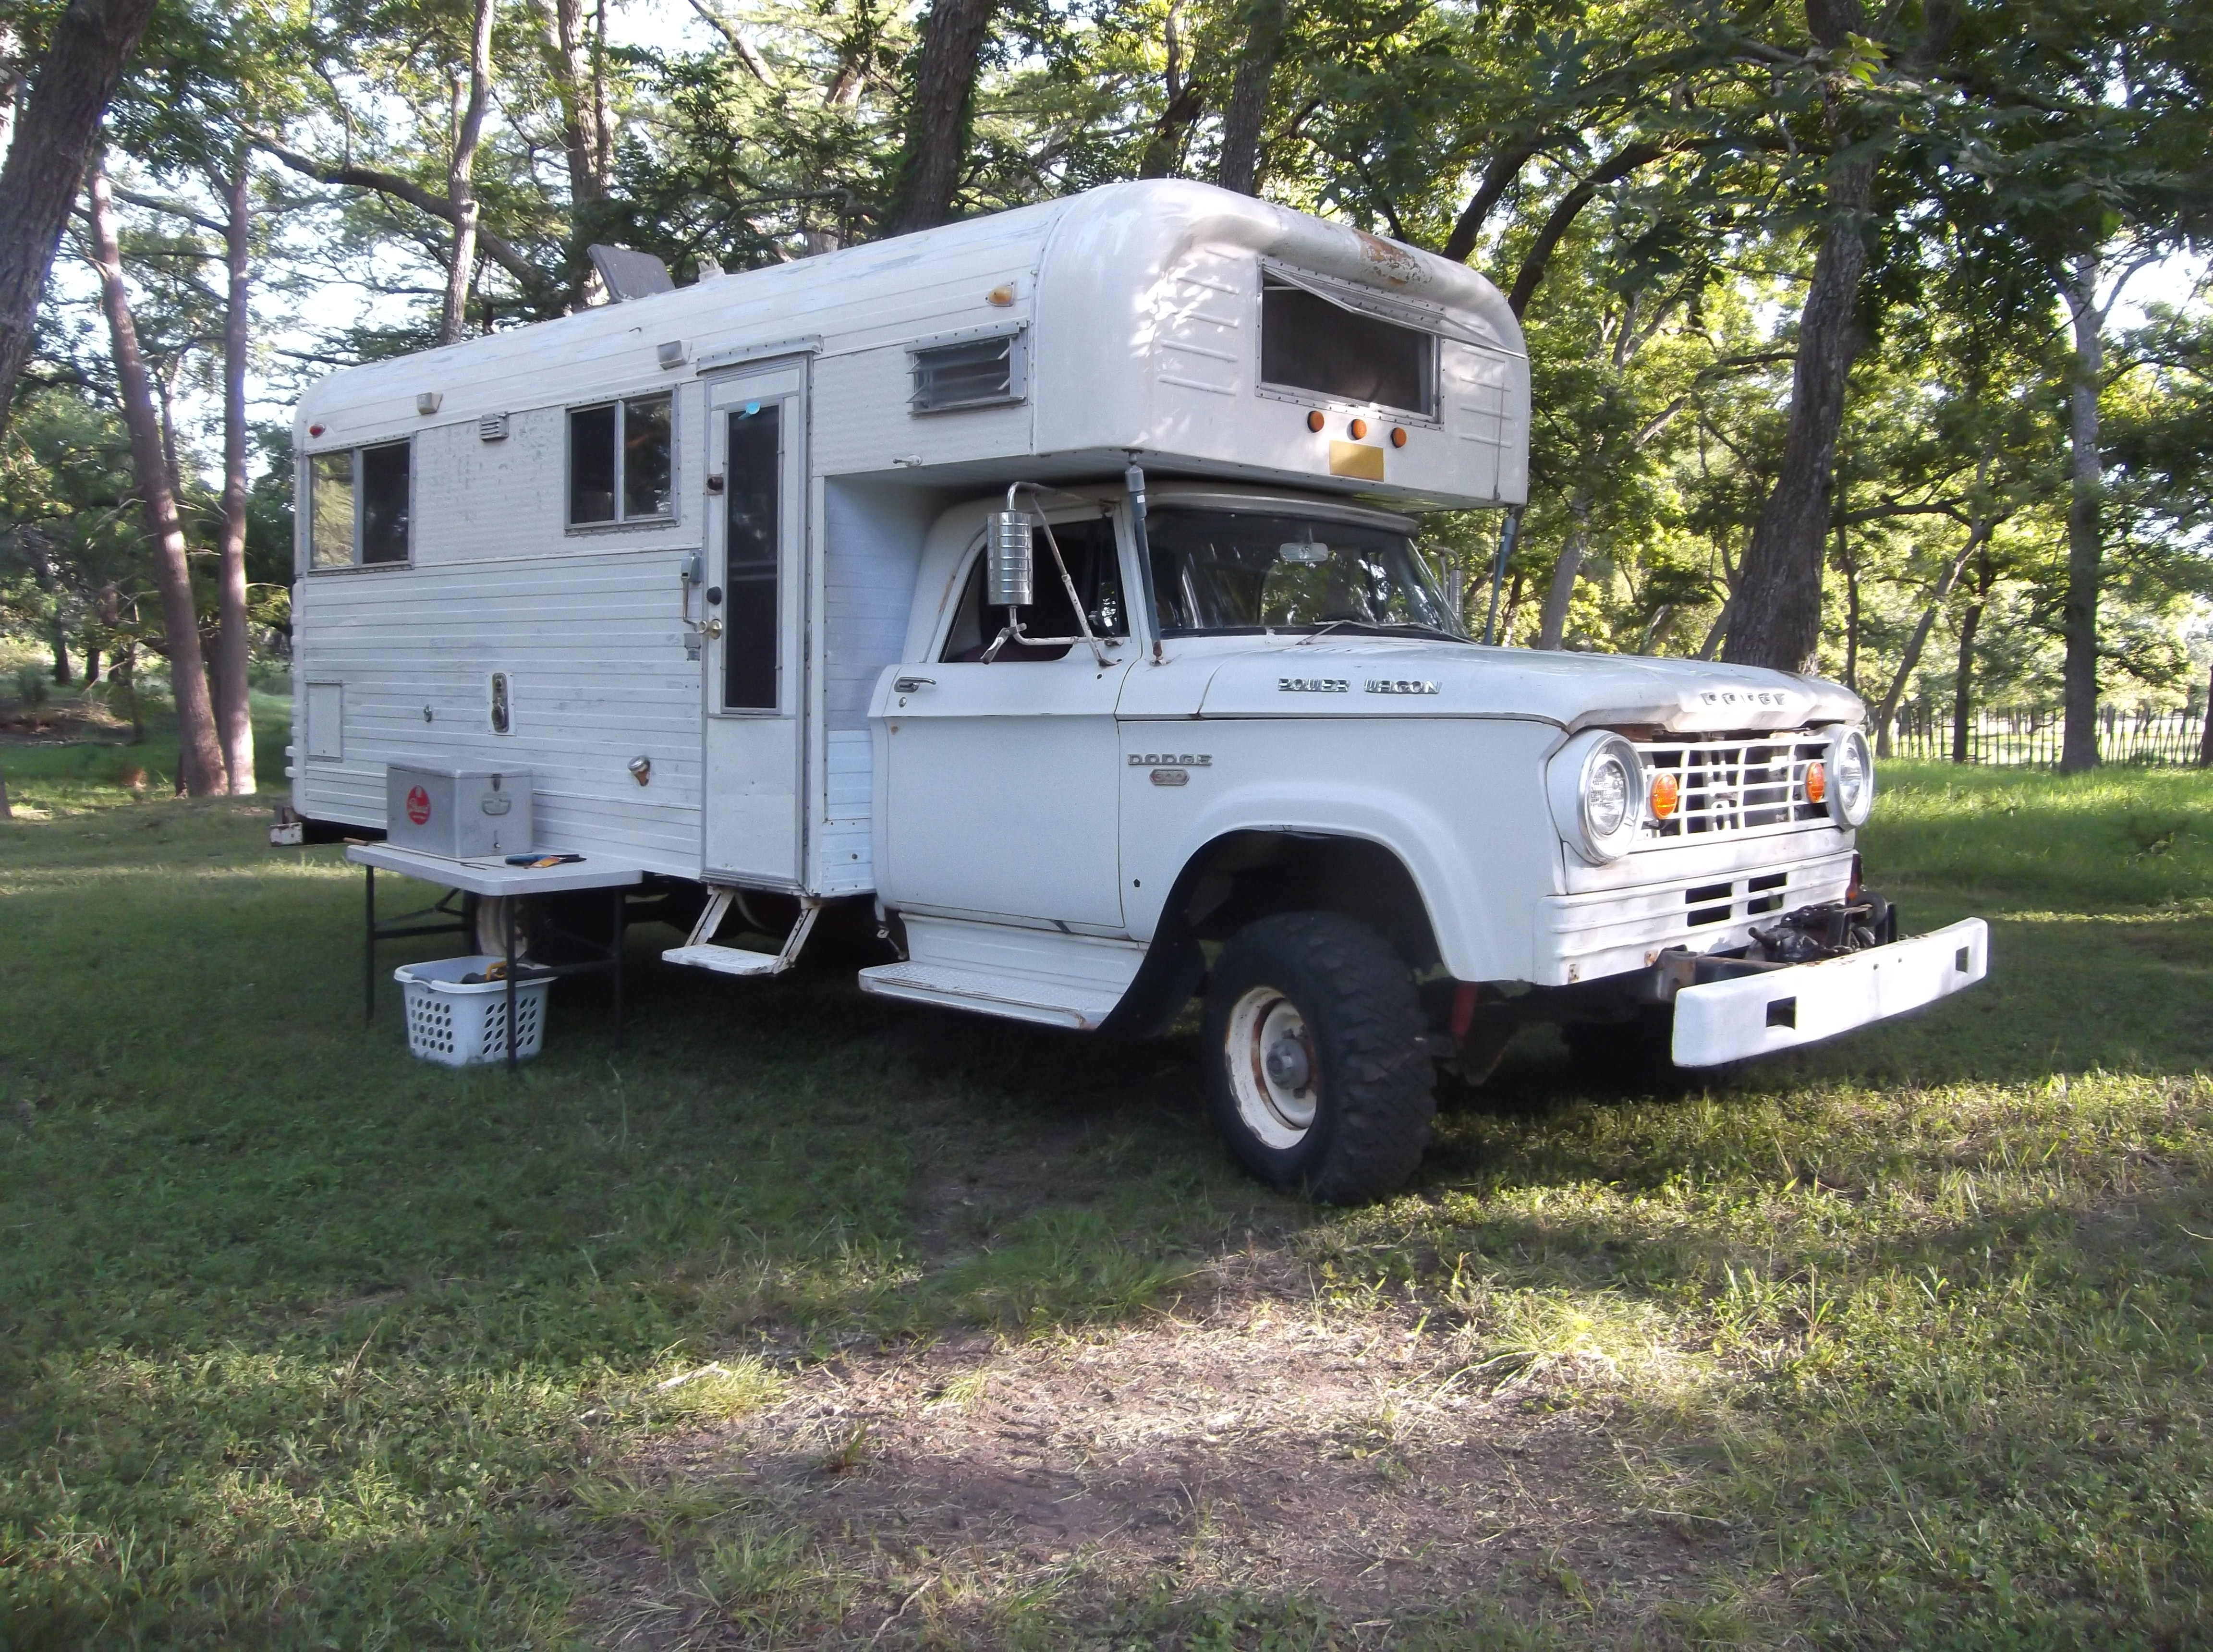 Curbside Classic: 1964 Chevrolet C30 Chinook Class C Motorhome